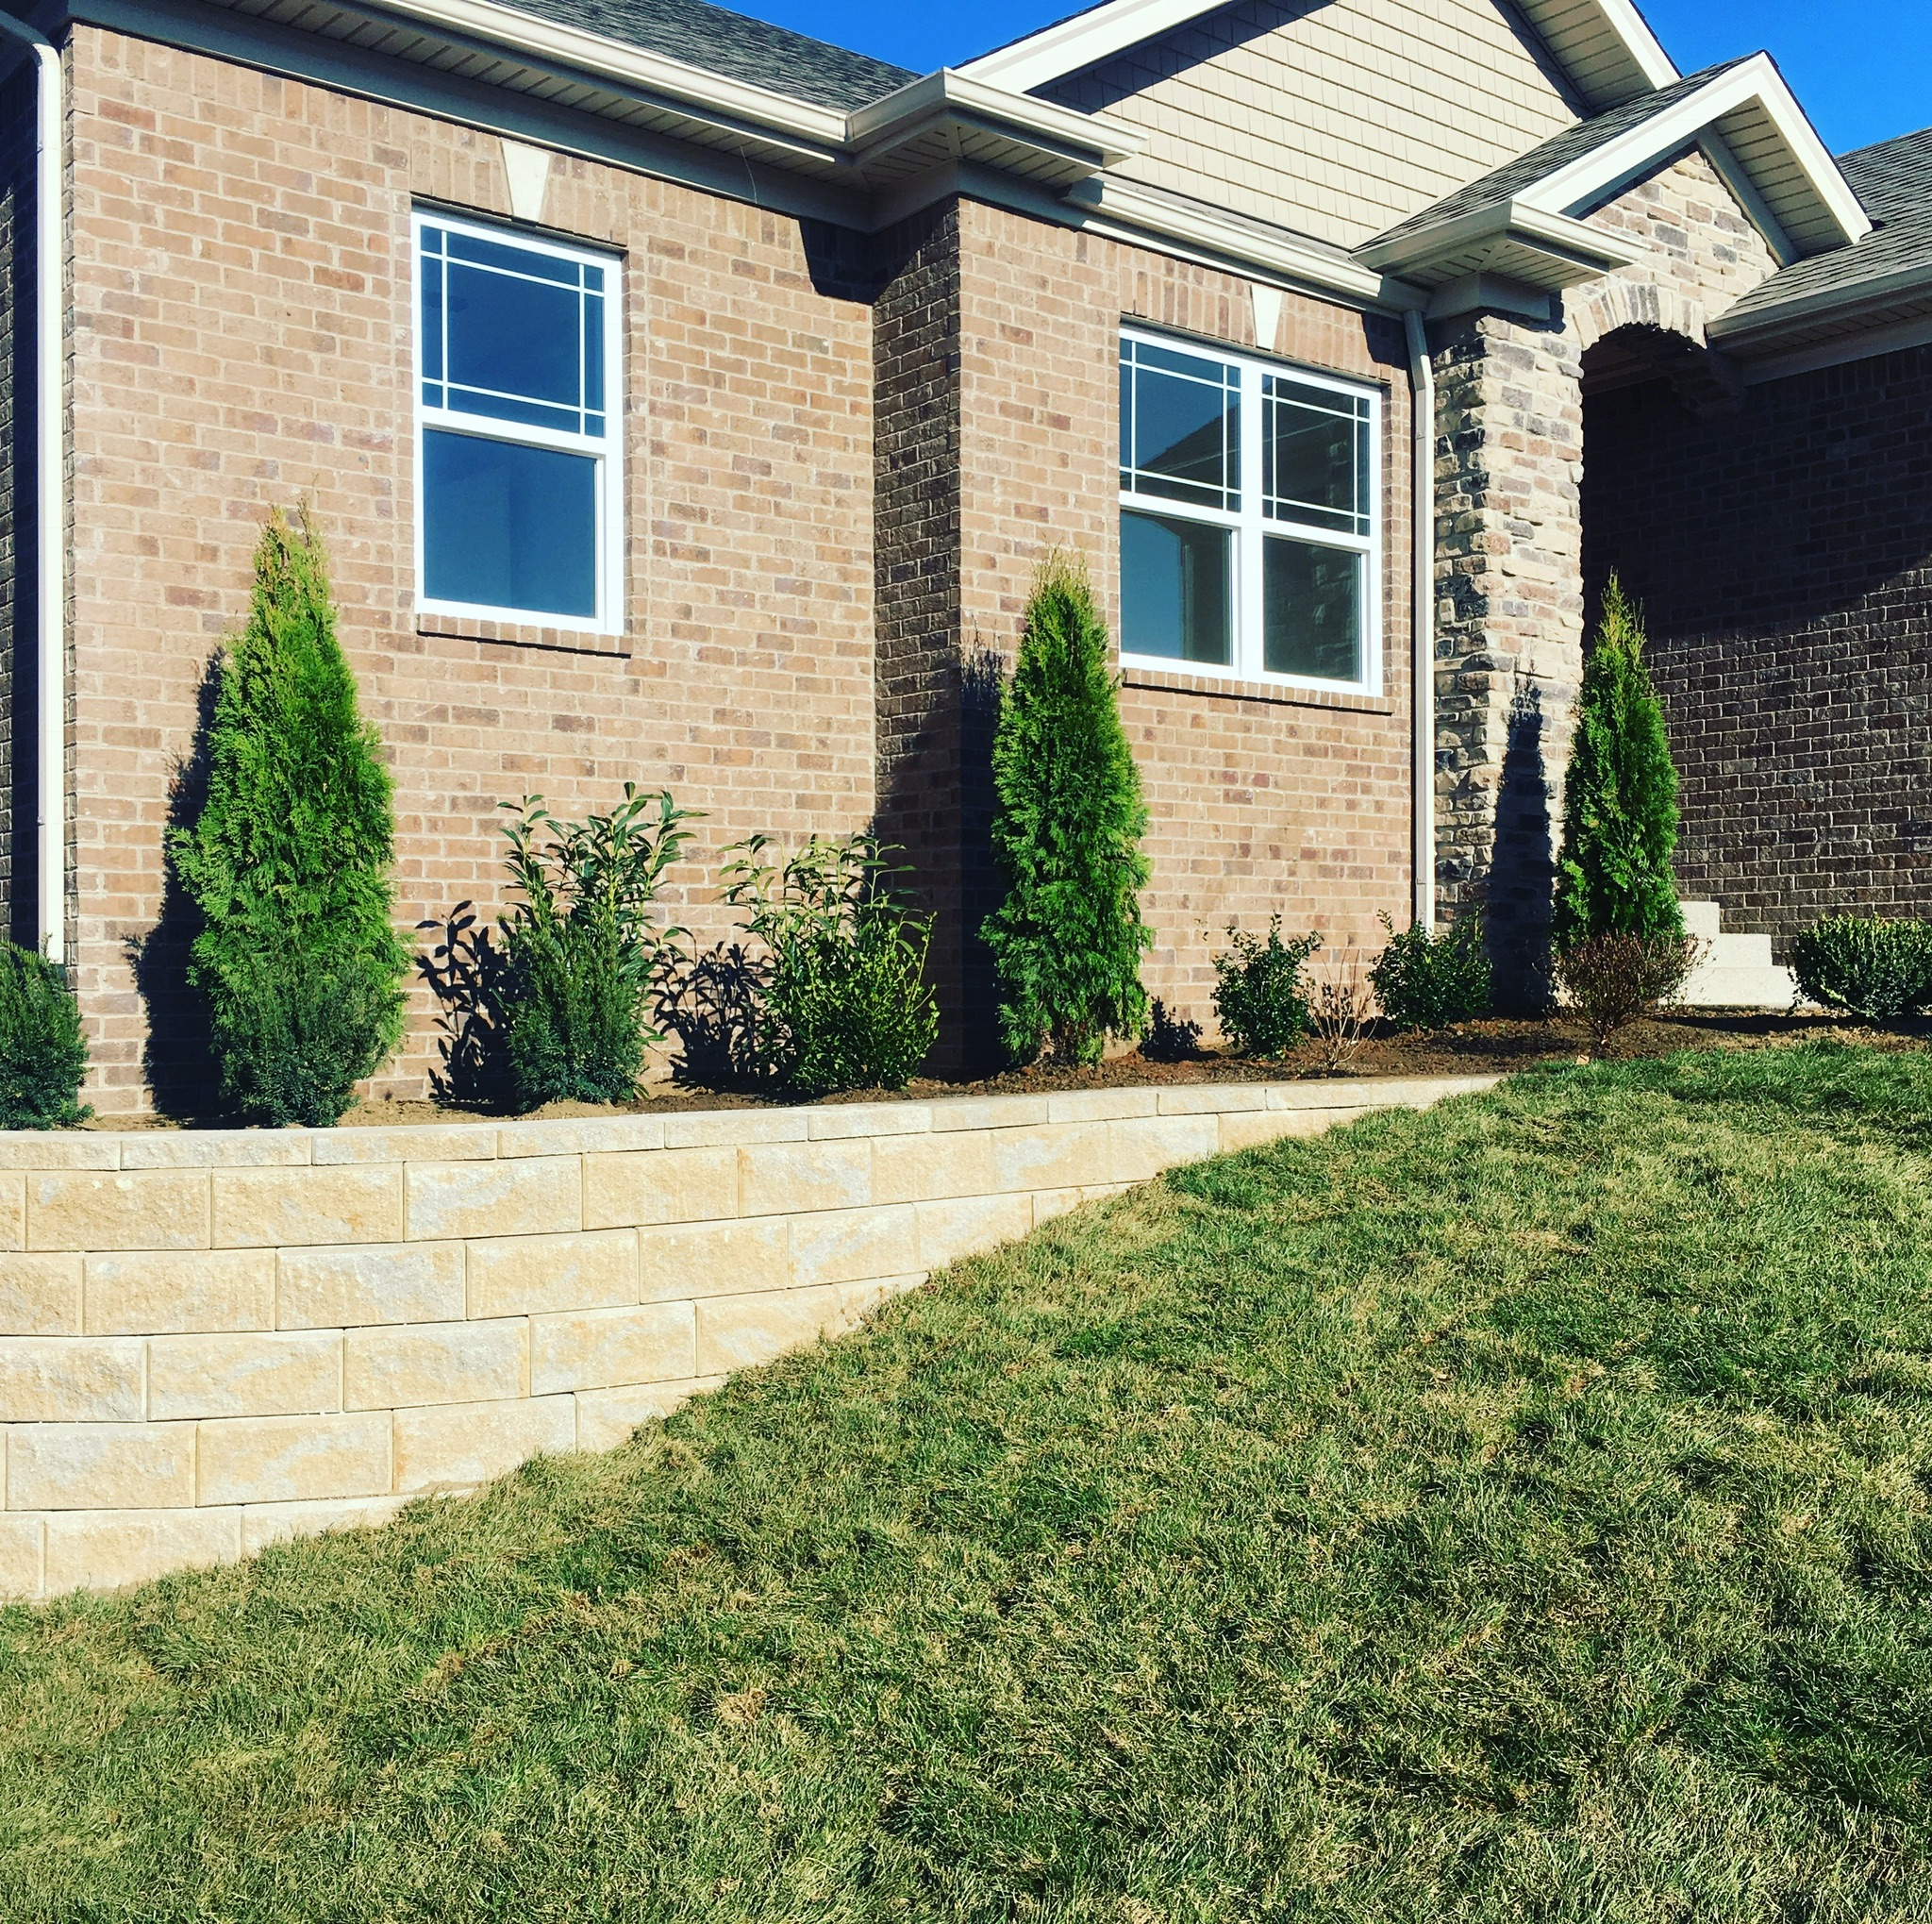 Landscaping with a Retaining Wall